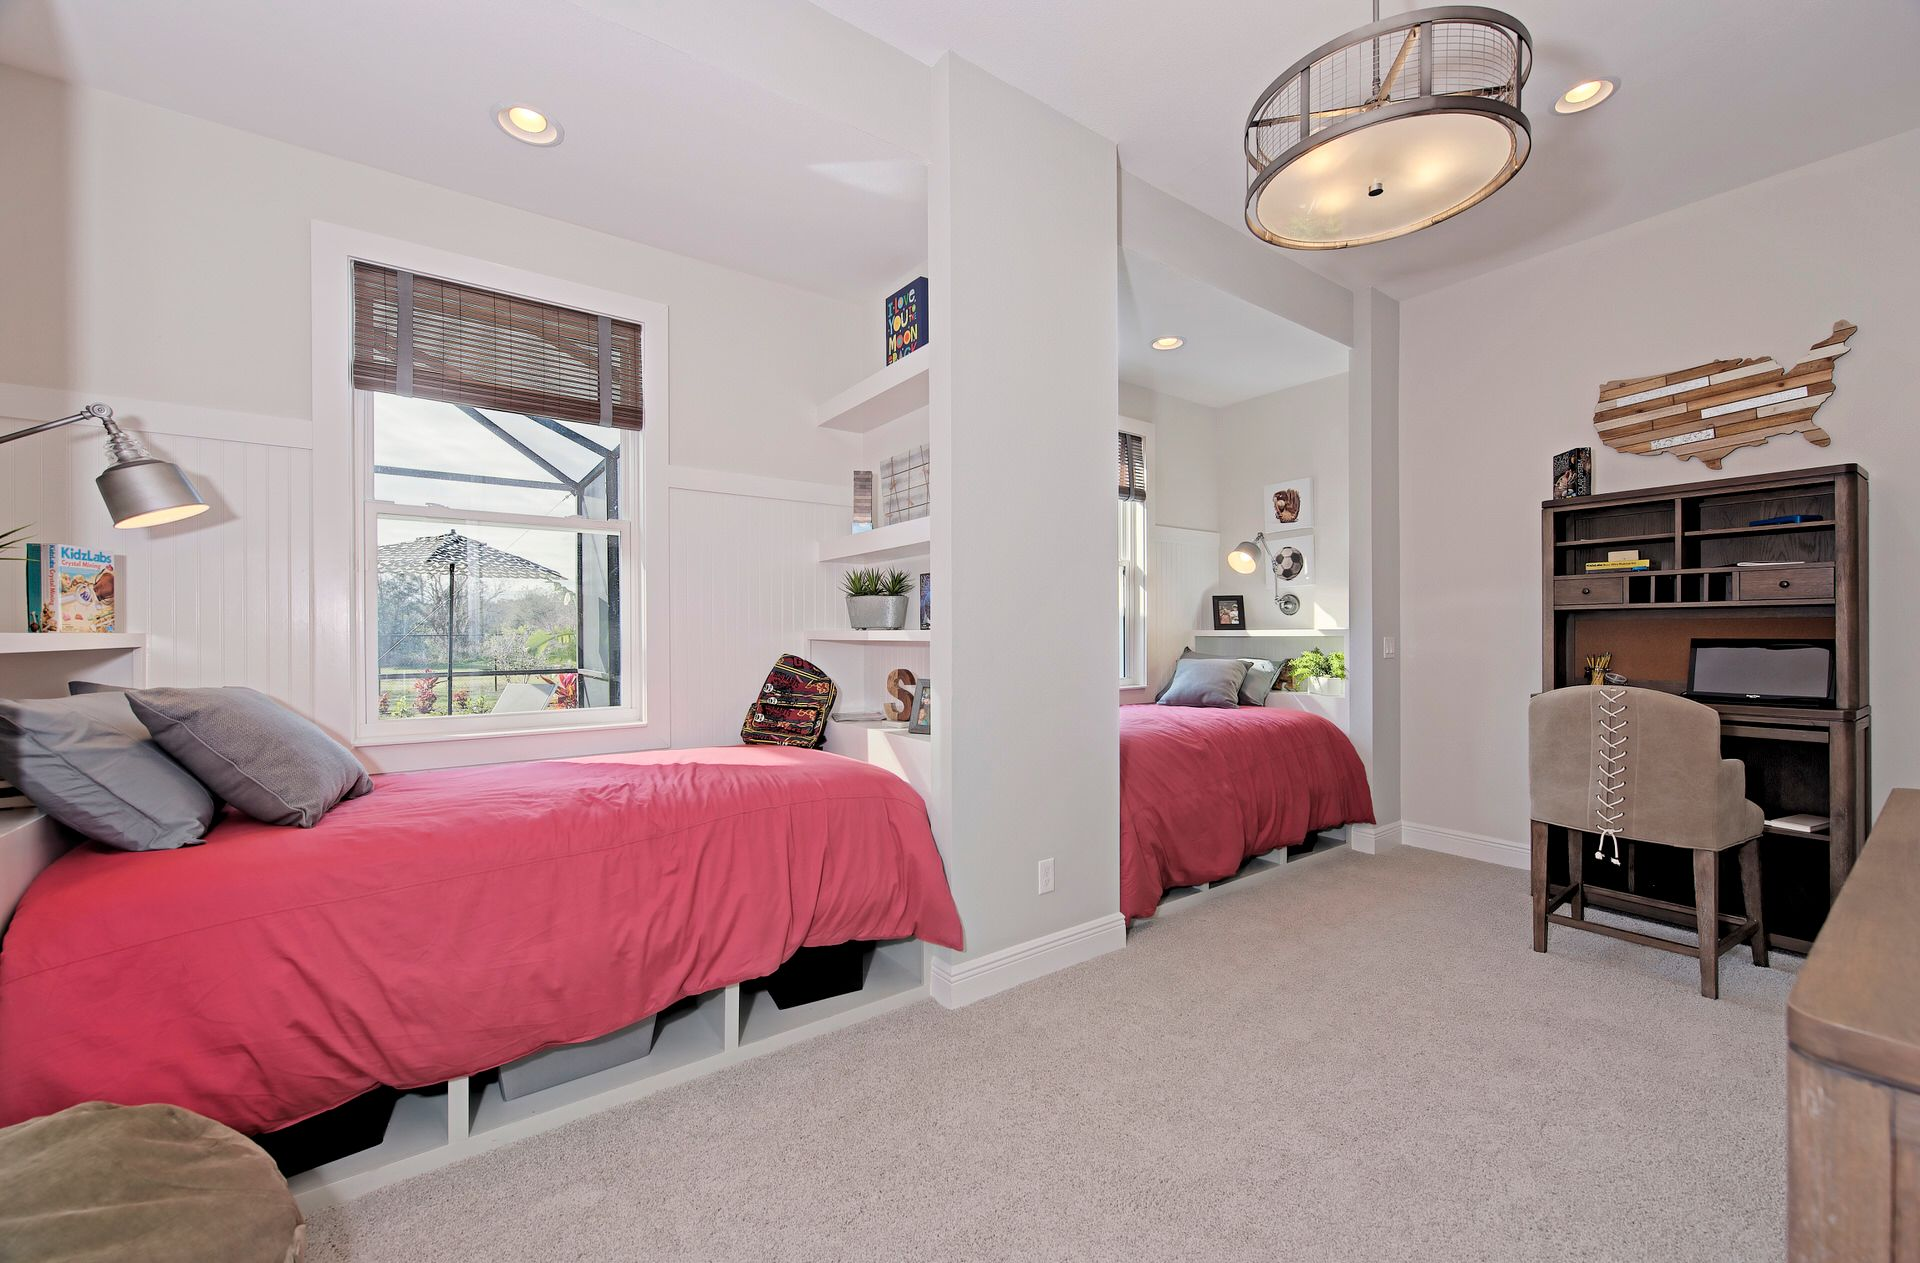 Bedroom featured in the Belize By Medallion Home in Sarasota-Bradenton, FL